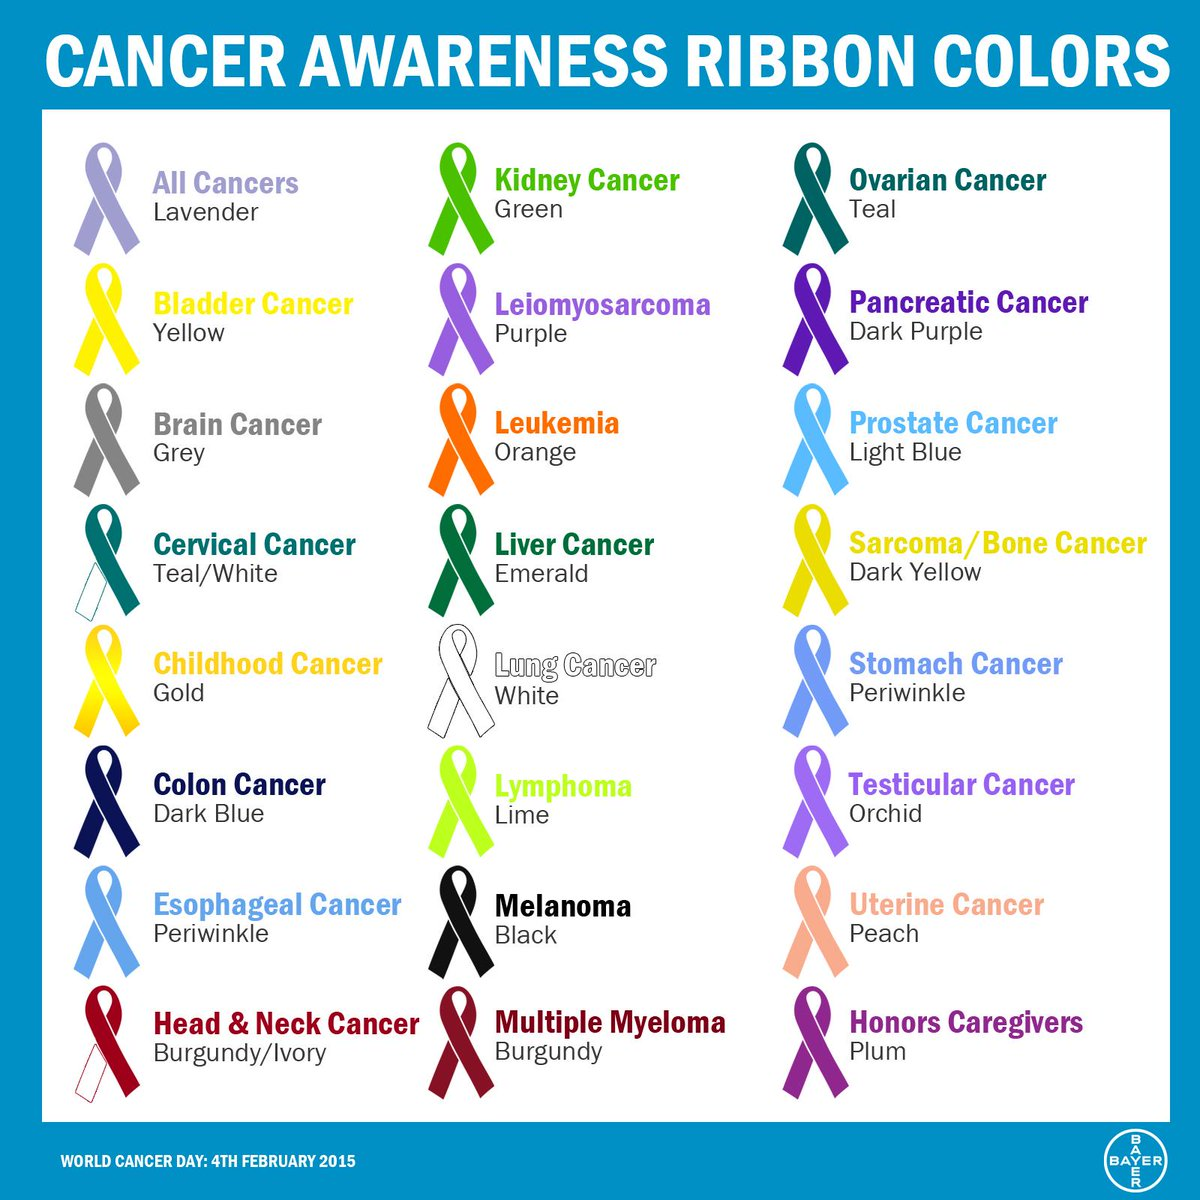 All cancer awareness ribbon color all cancer ribbon color free dyk all cancer awareness ribbon colors spread the word solutions cancer awareness ribbon coloring page cancer awareness ribbon color chart nvjuhfo Choice Image